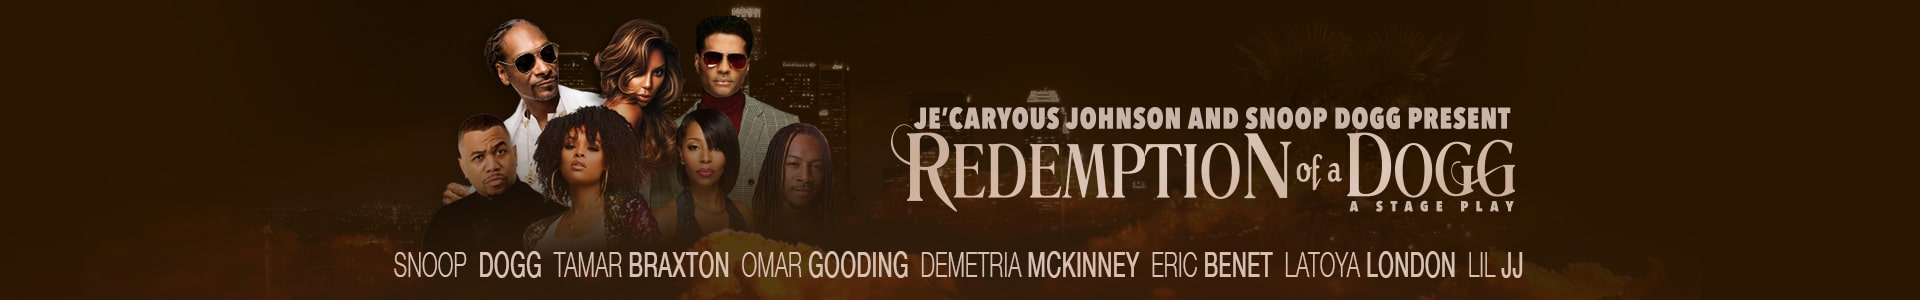 Redemption of a Dogg - St  Louis, MO - JeCaryous Johnson